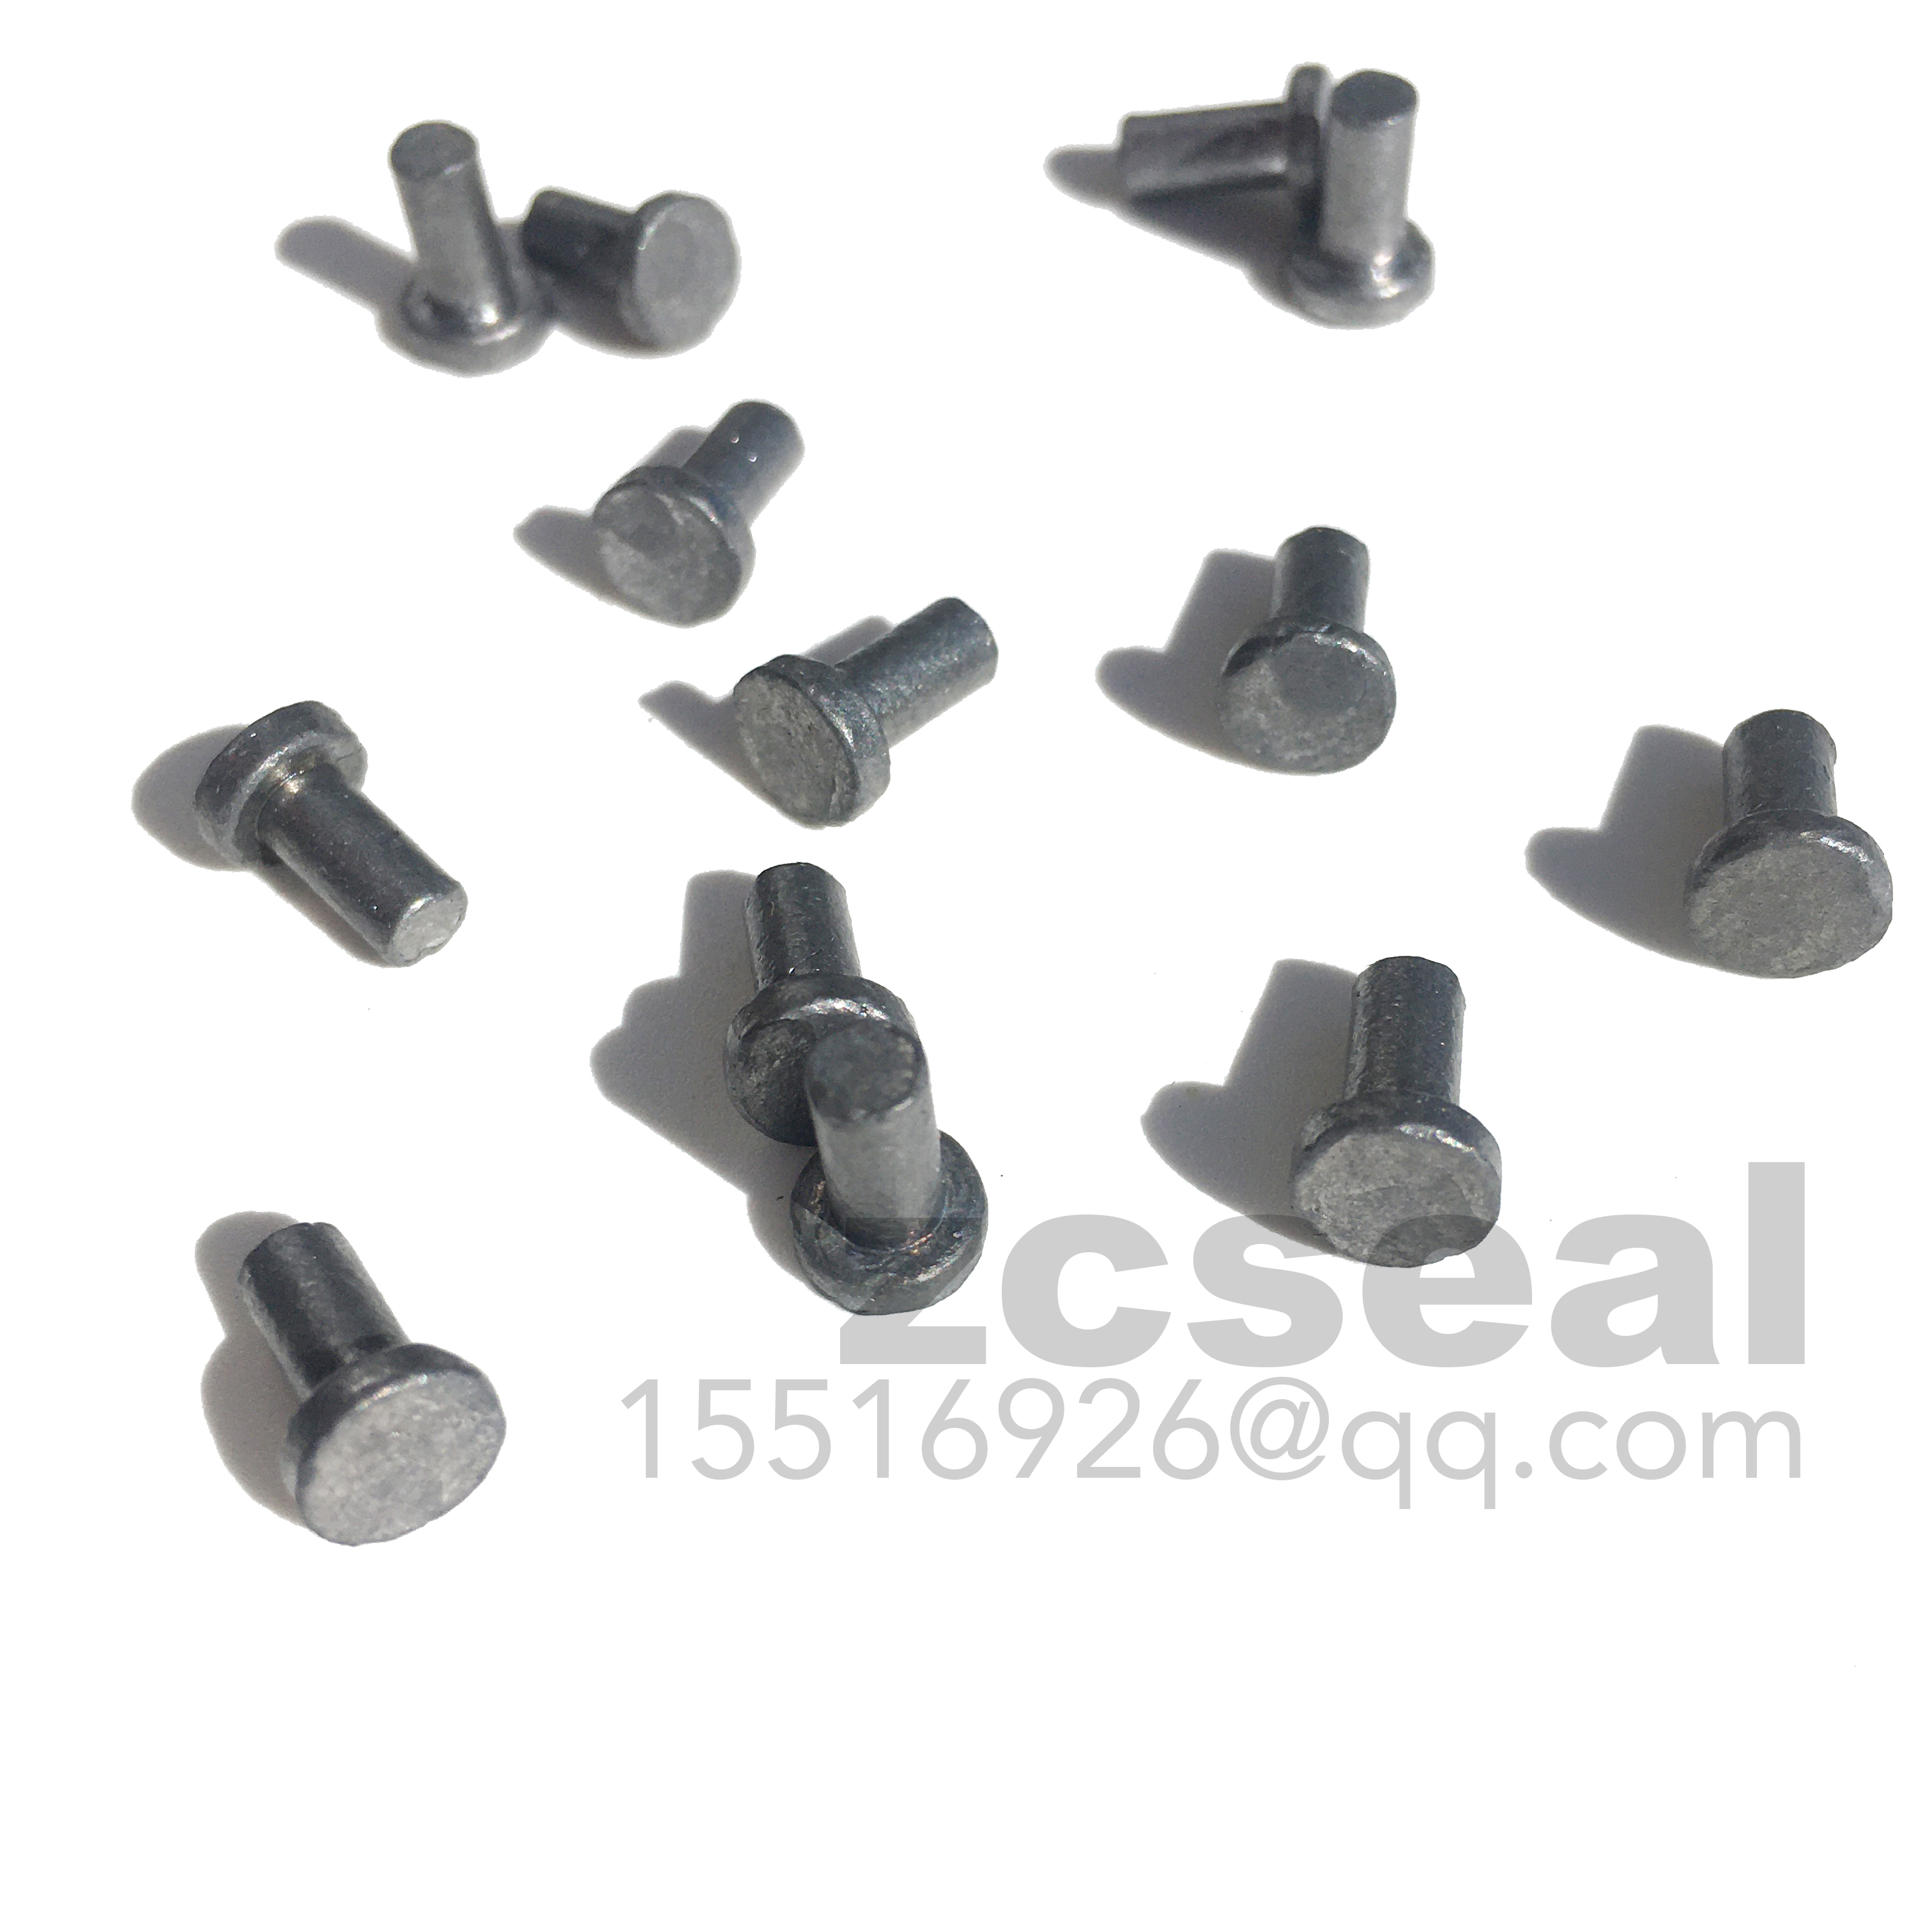 100g Meter Lead Seal Nail Gas Meter Seal Security Guard Anti-fake Guard Disposable Unsustainable Snag Hobnail Stud, Tack